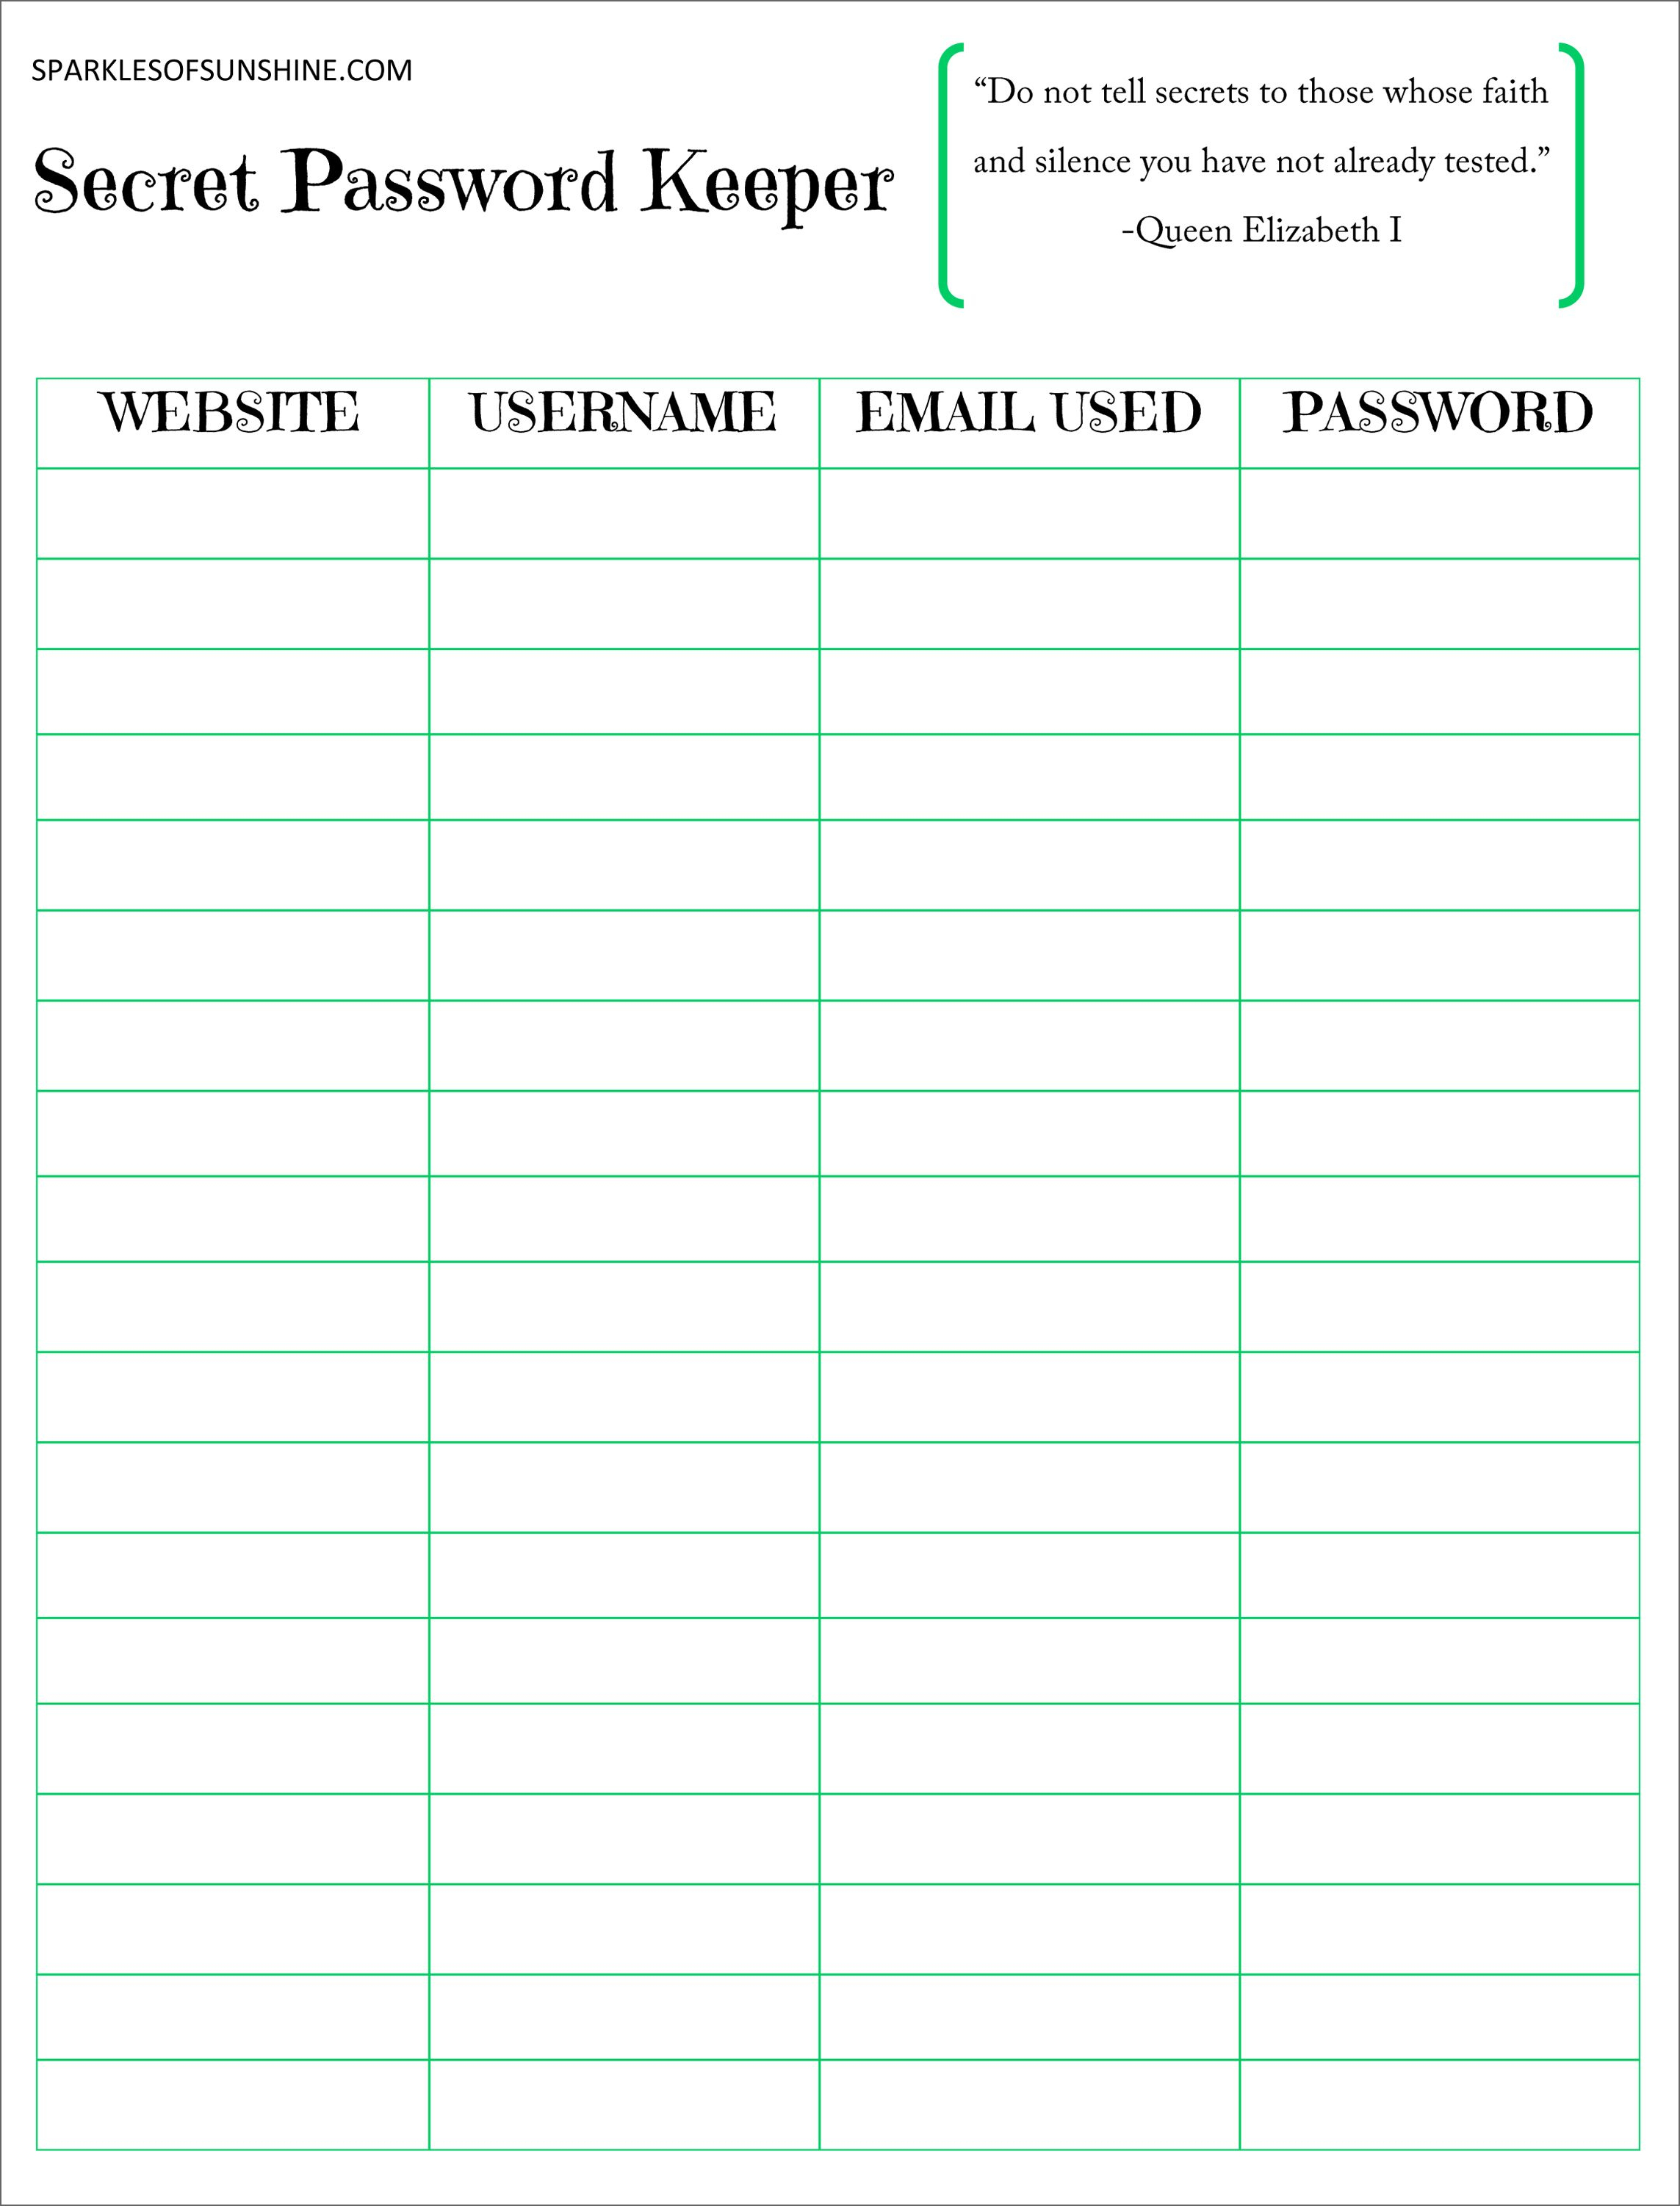 Secret Password Keeper Free Printable | Planners | Password Keeper - Free Printable Password Keeper